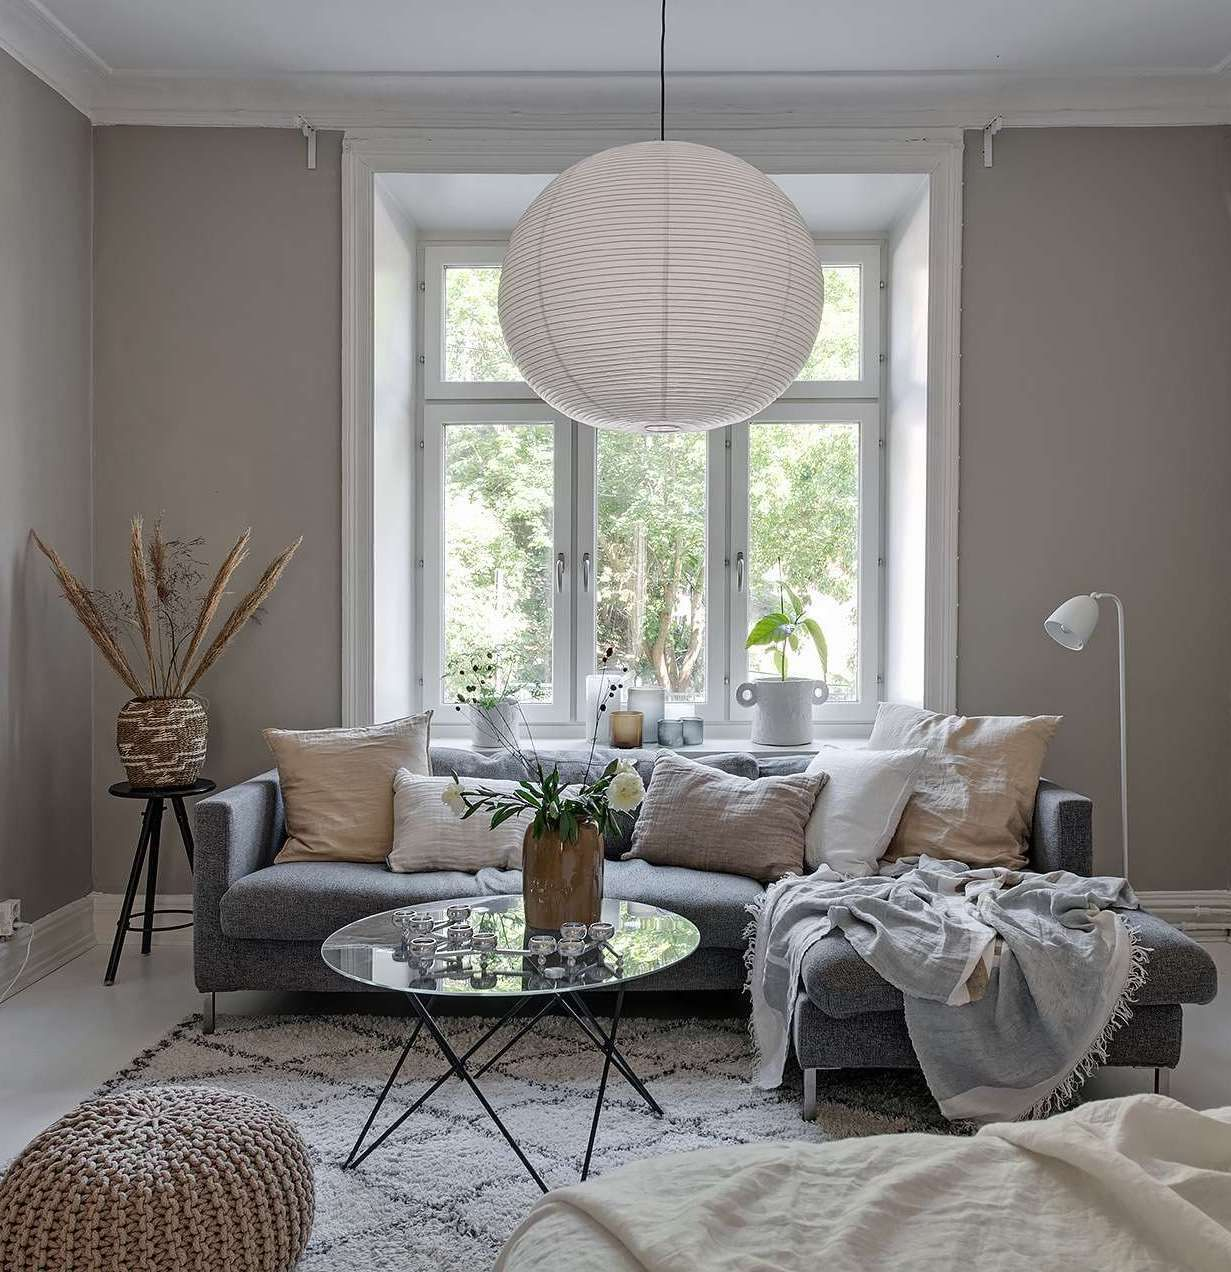 43++ Beige and grey living room ideas information